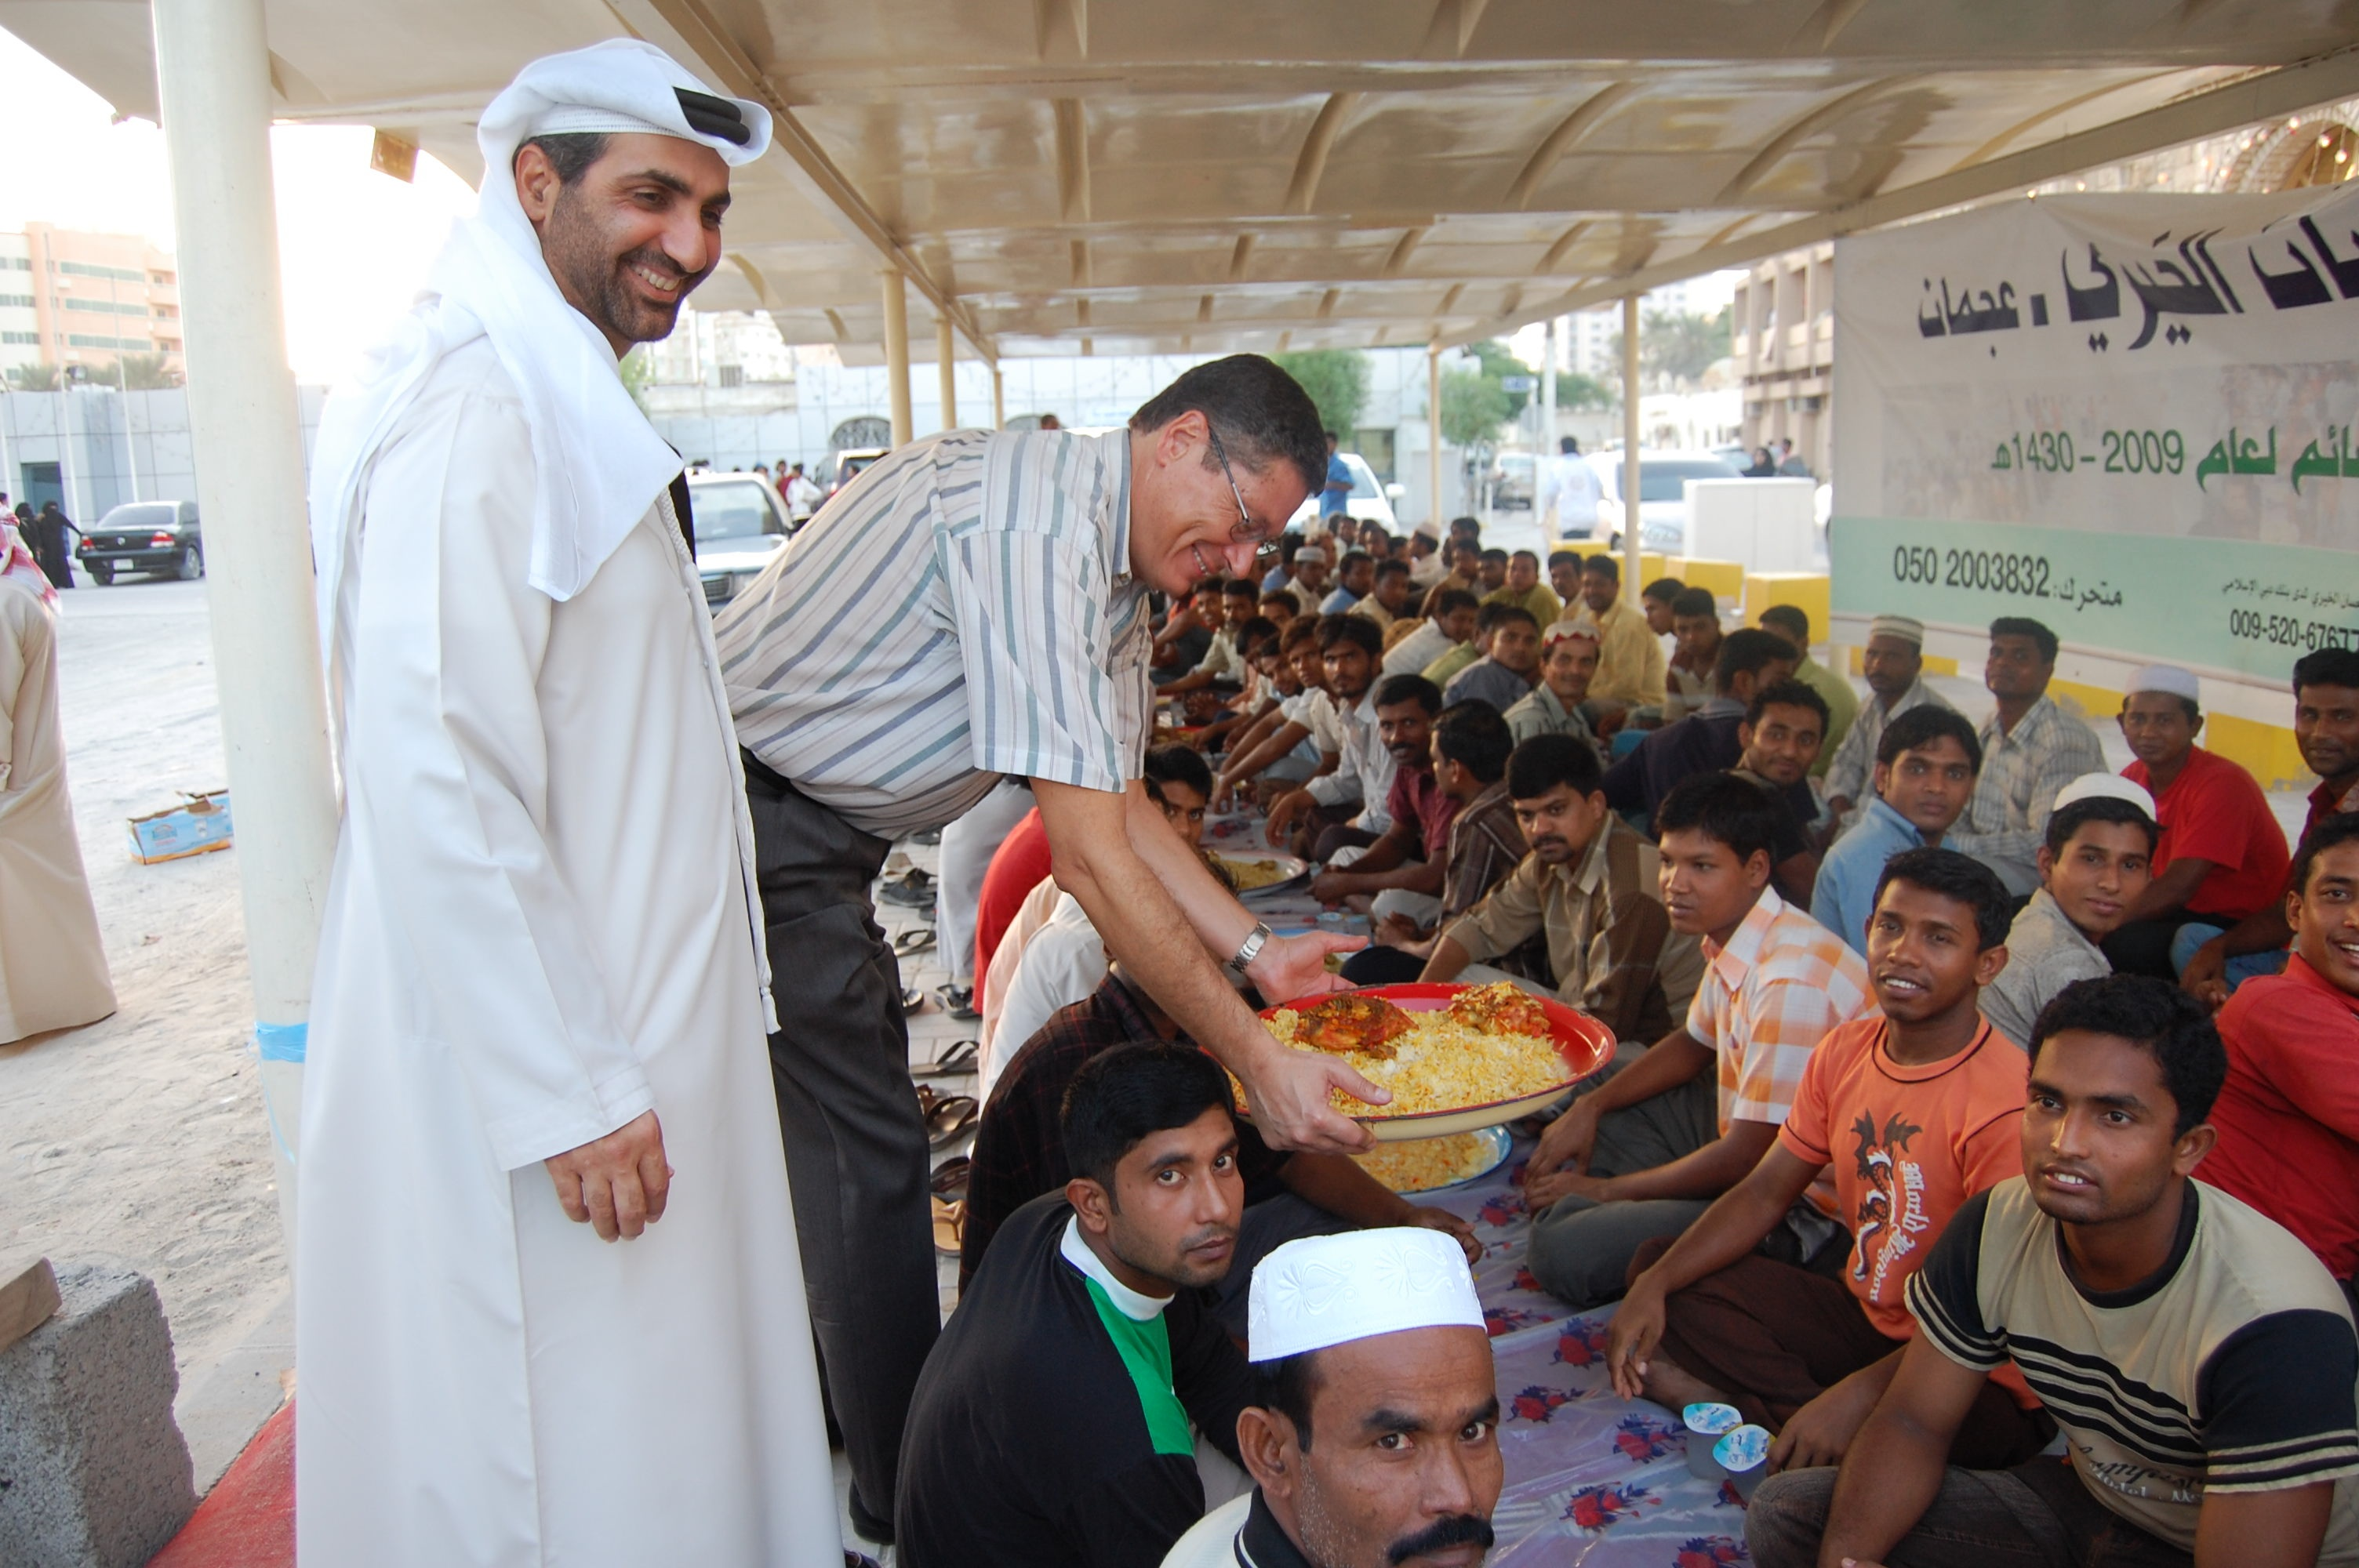 The Green Sheikh on Ramadan: Waste 2 Food or Food 2 Waste?